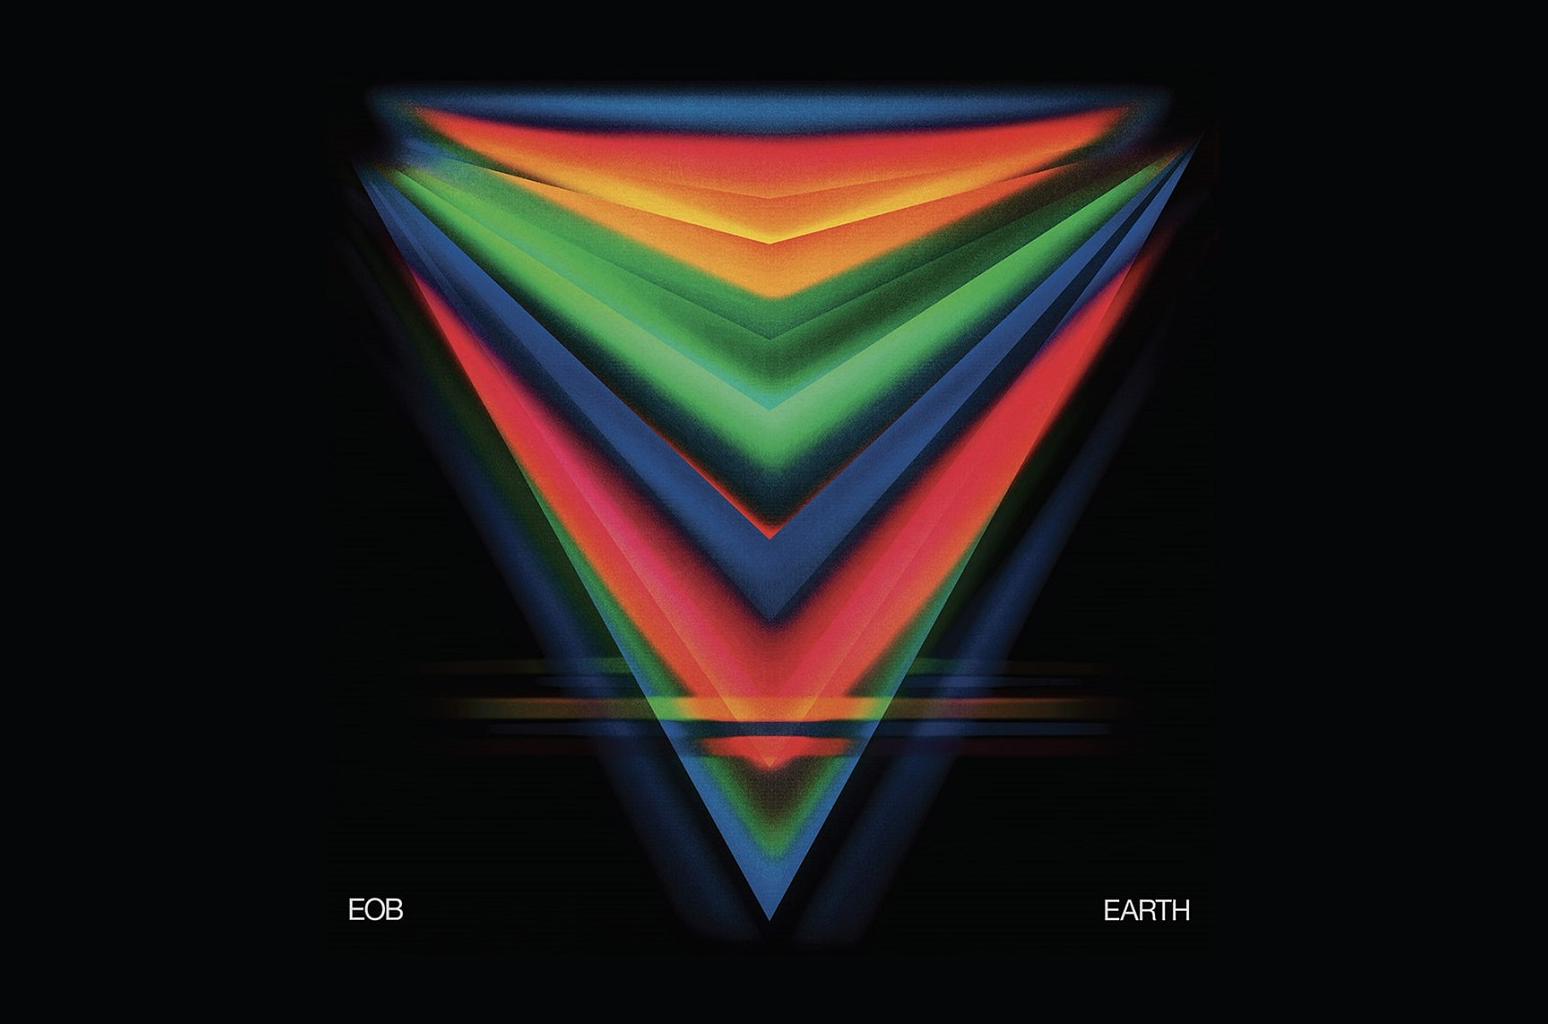 EOB Earth